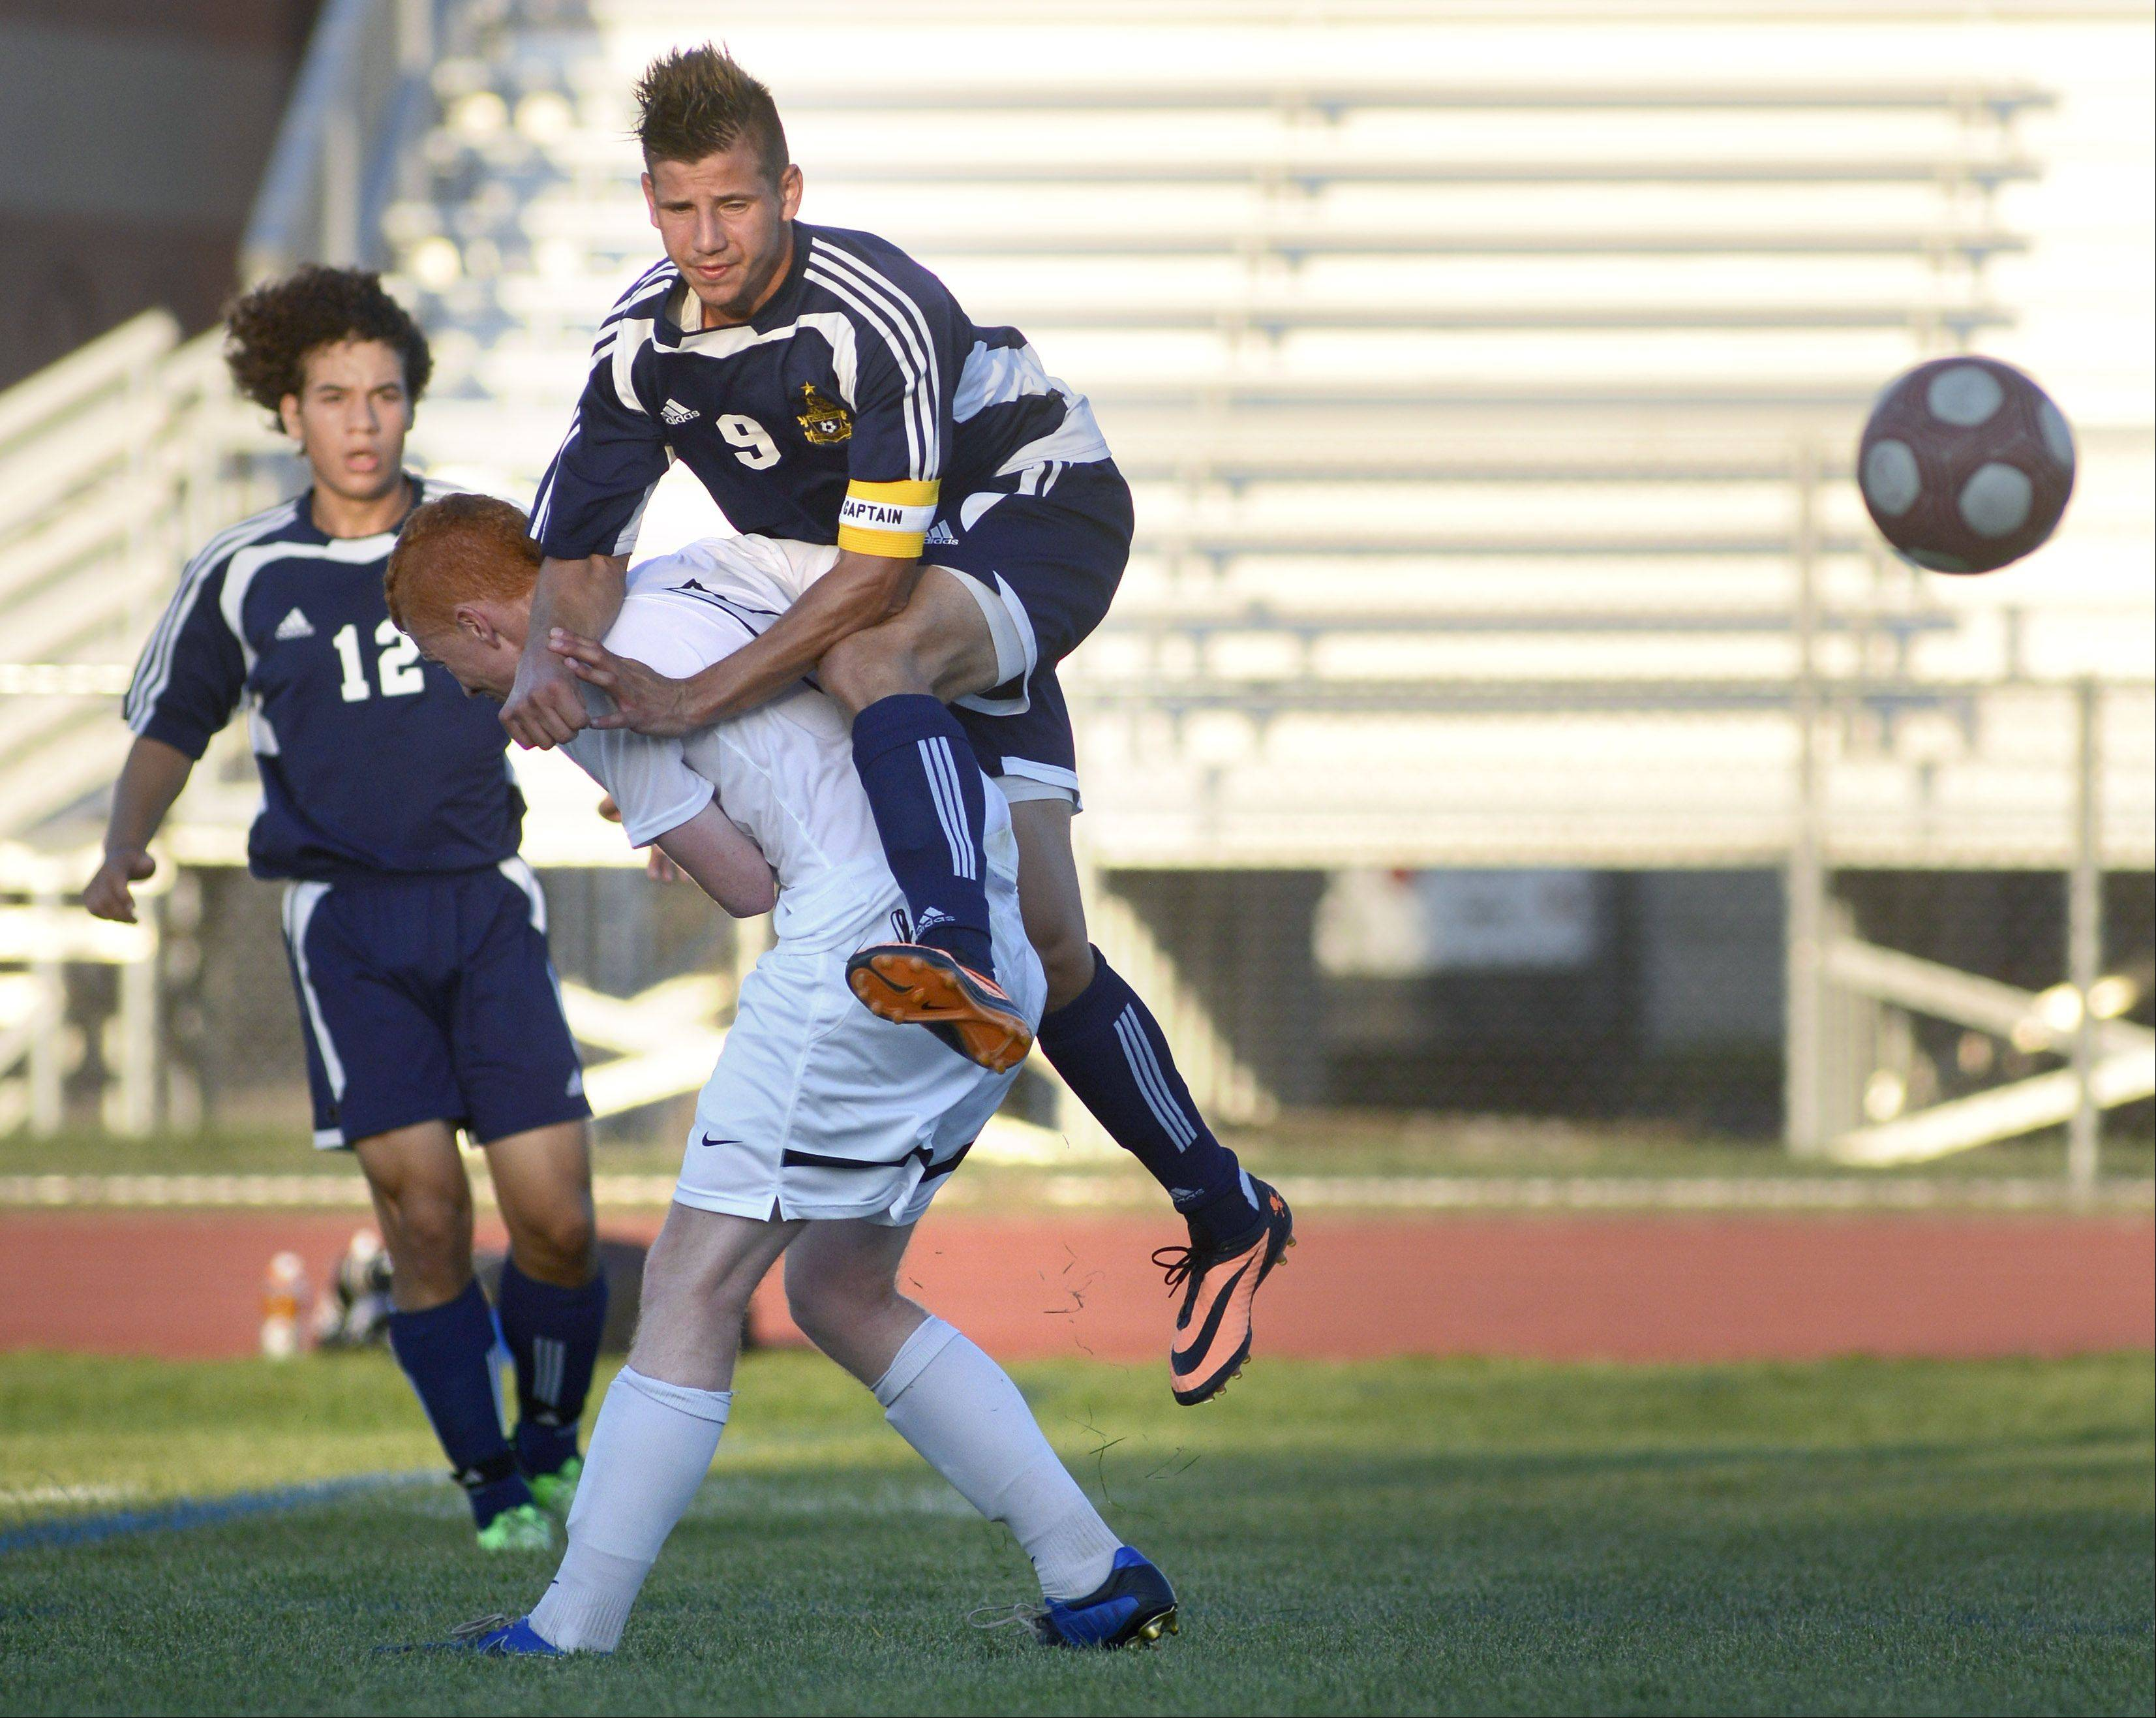 Neuqua Valley's Jake Loncar leaps onto the back of St. Charles North's Jack Fries after deflecting the ball in the first half on Tuesday, August 27.